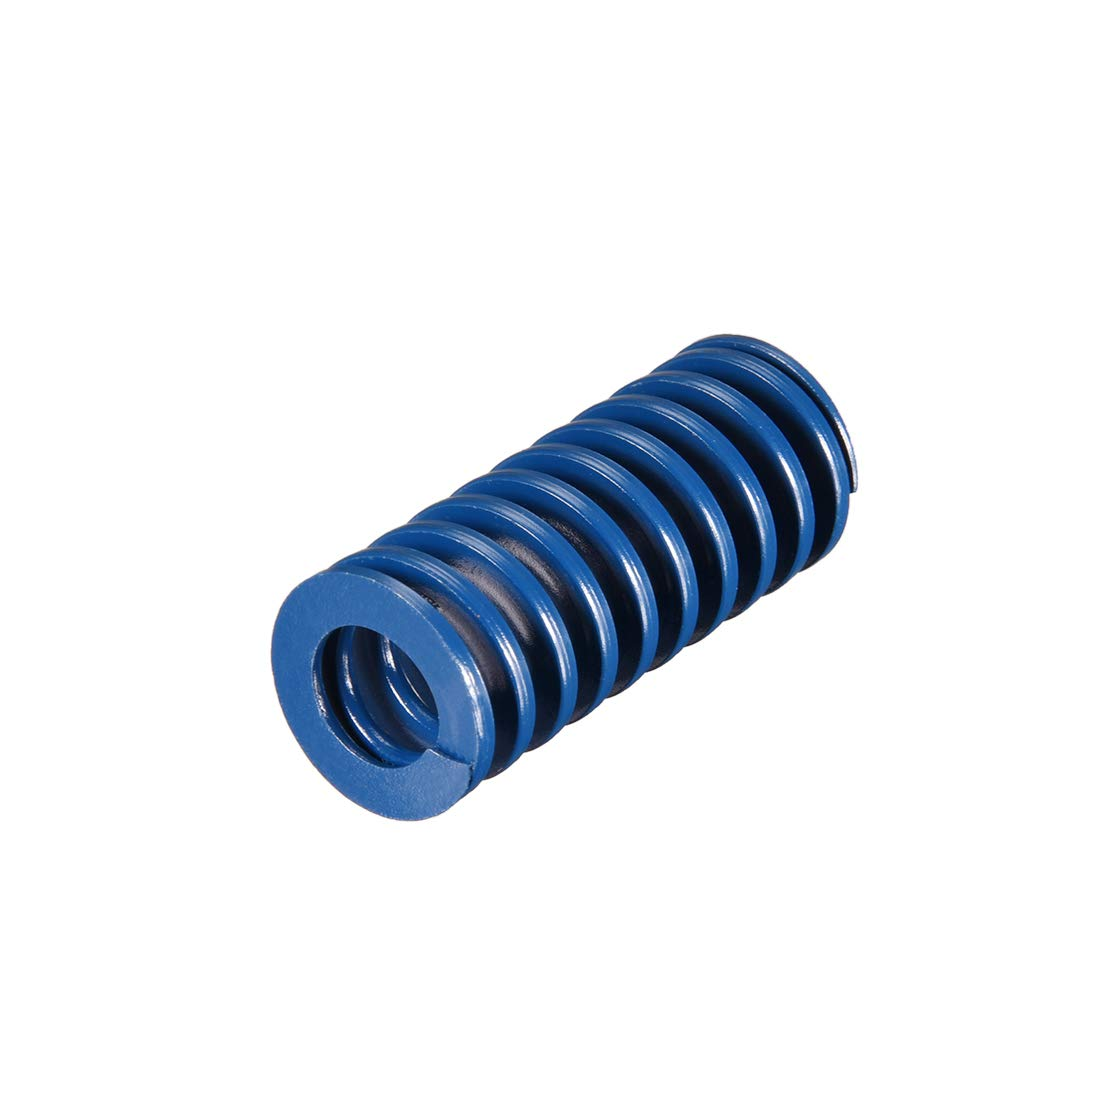 uxcell 20mm OD 45mm Long Spiral Stamping Light Load Compression Mould Die Spring Blue 1Pcs